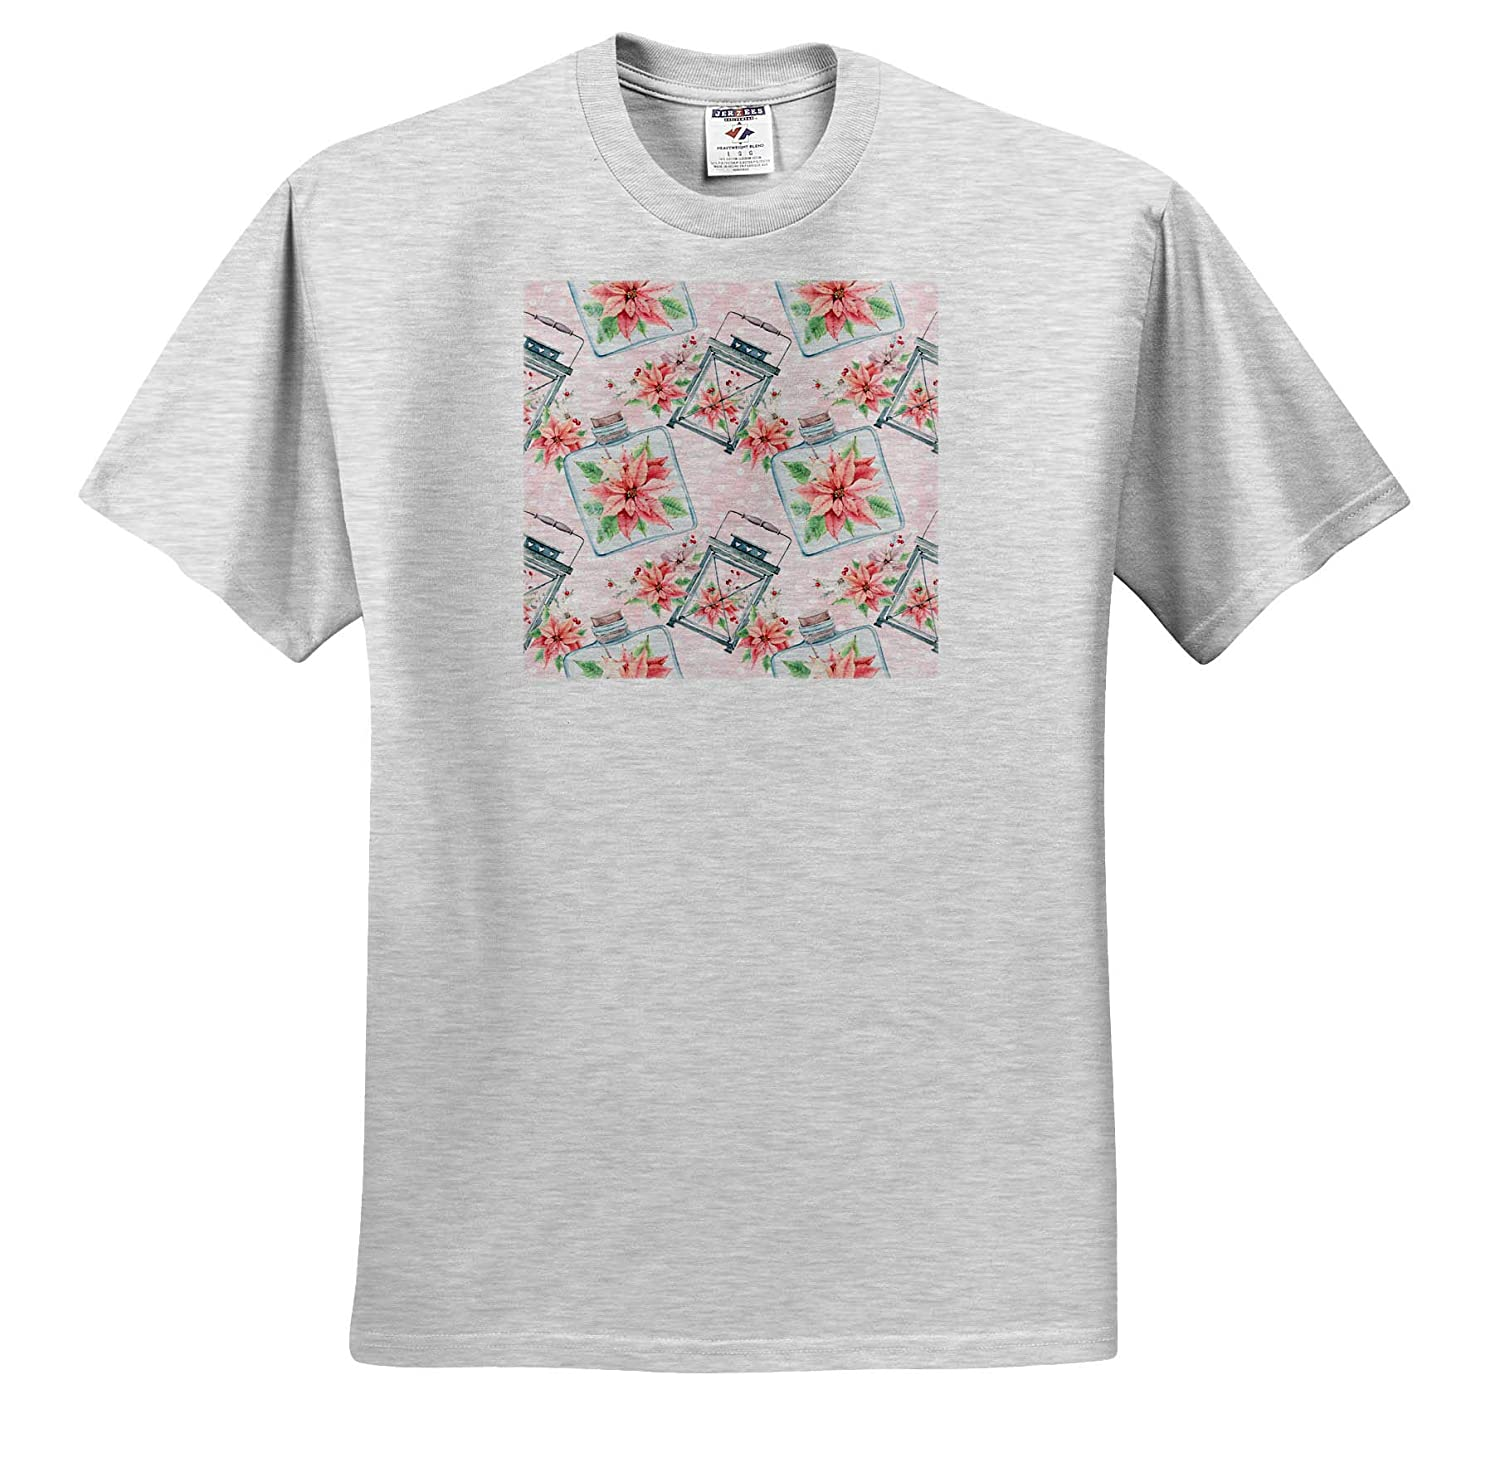 Christmas Pretty Image of Watercolor Poinsettia in Bottles Pattern 3dRose Anne Marie Baugh ts/_318518 Adult T-Shirt XL